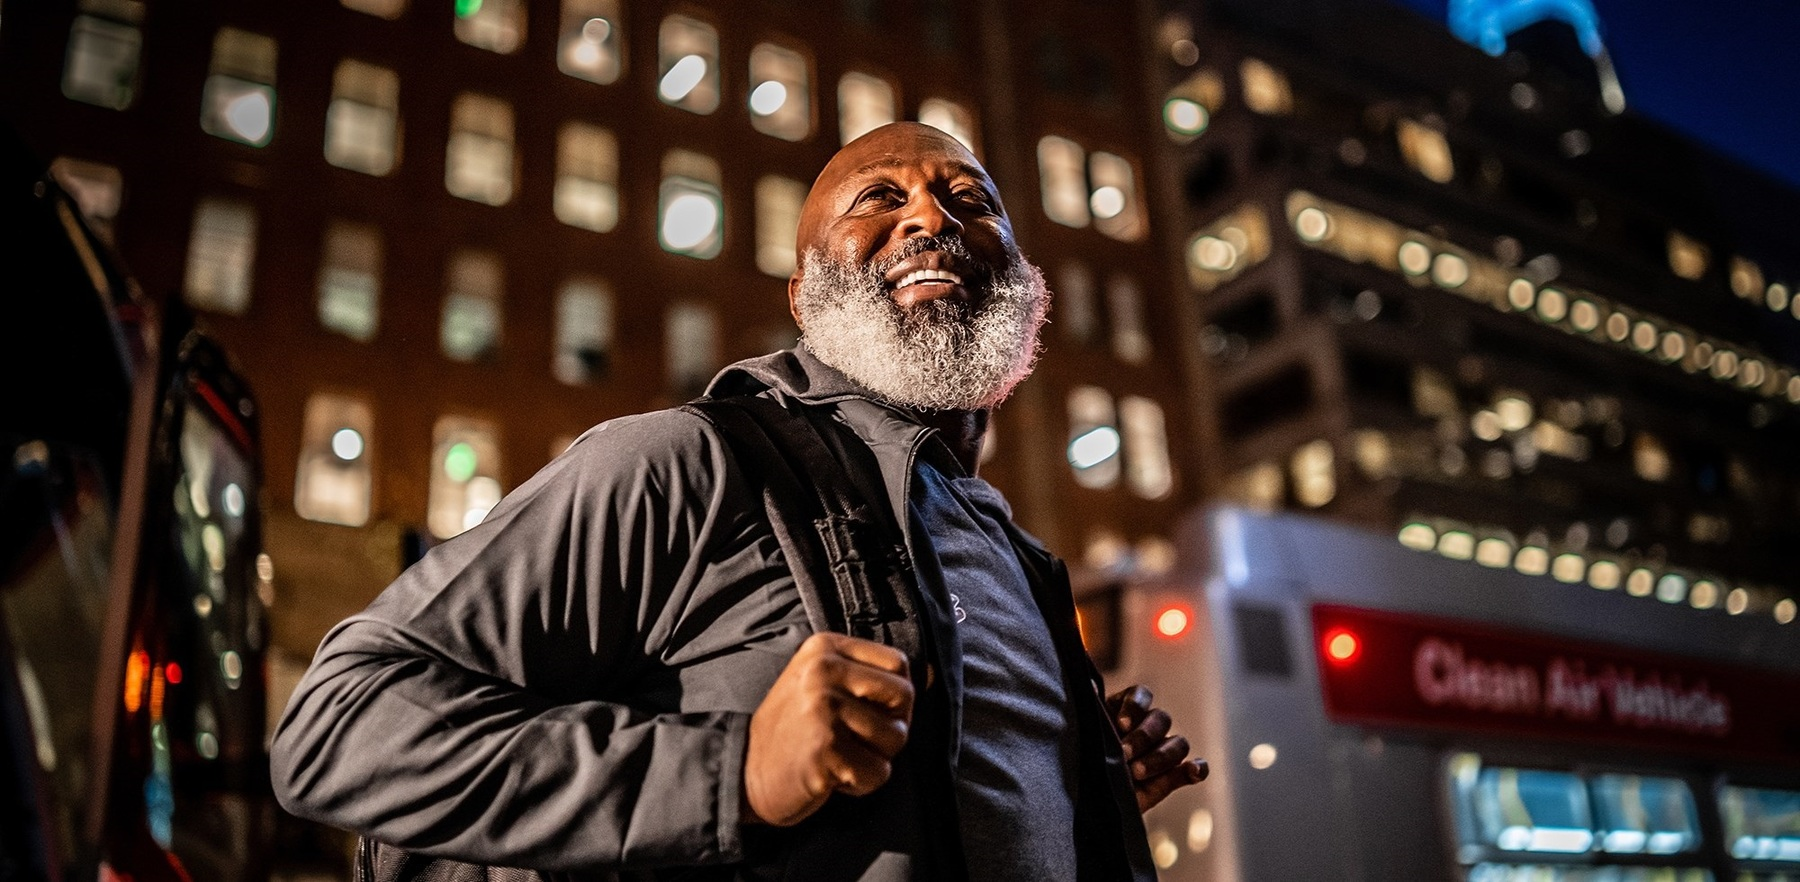 smiling Coach Lovie Smith disembarks from a bus in San Francisco